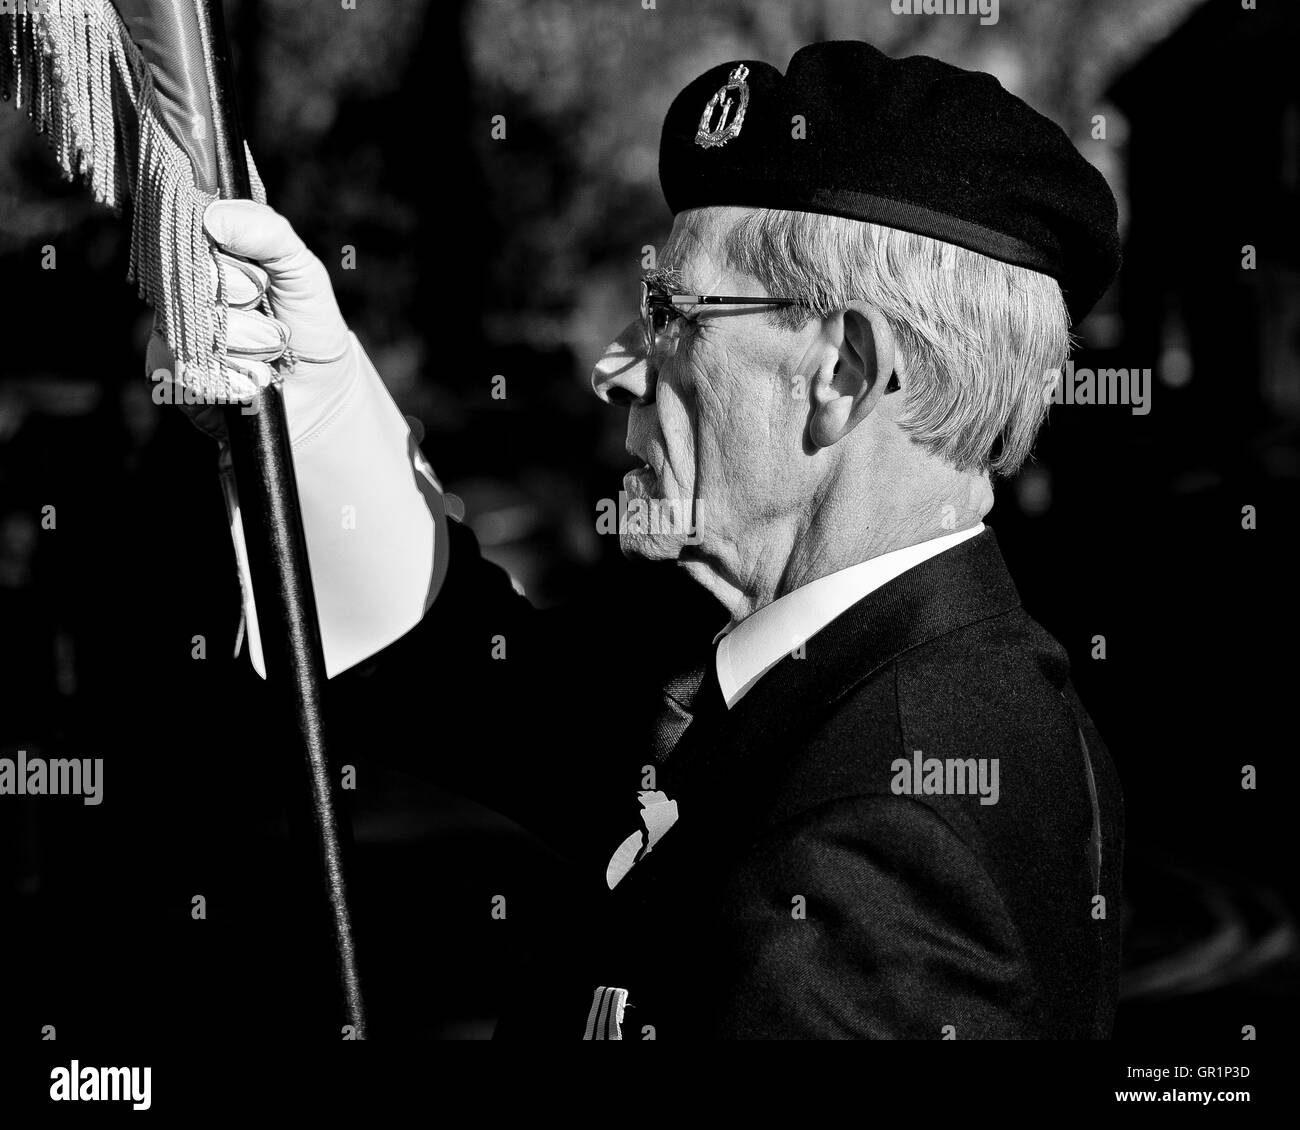 Remembrance Sunday military veterans parade - Stock Image